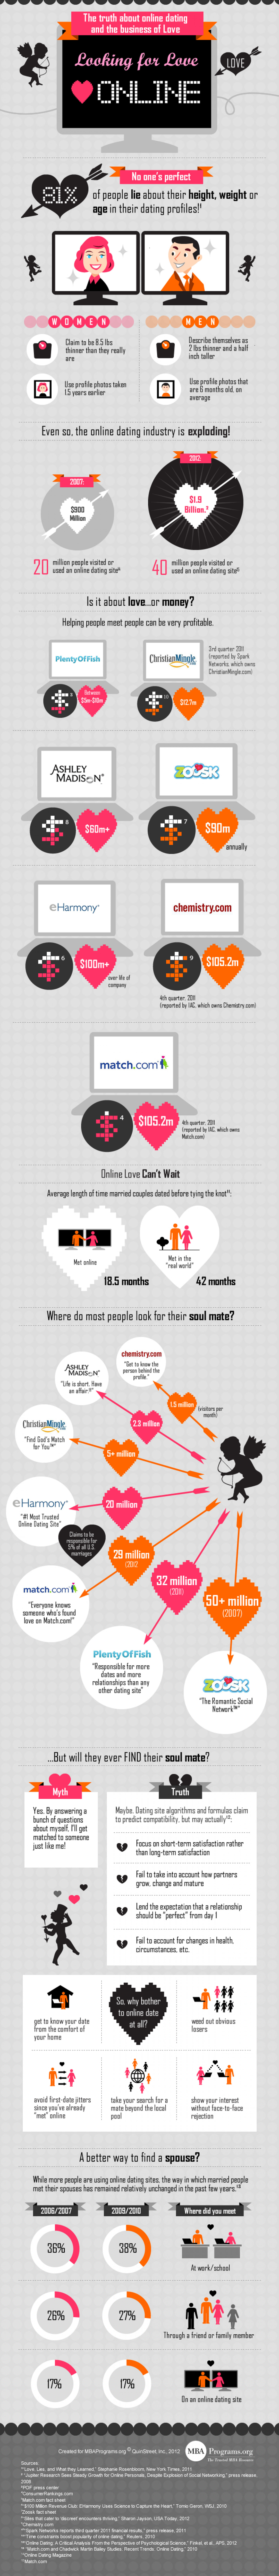 The logic of online lovin': Does online dating work? Infographic